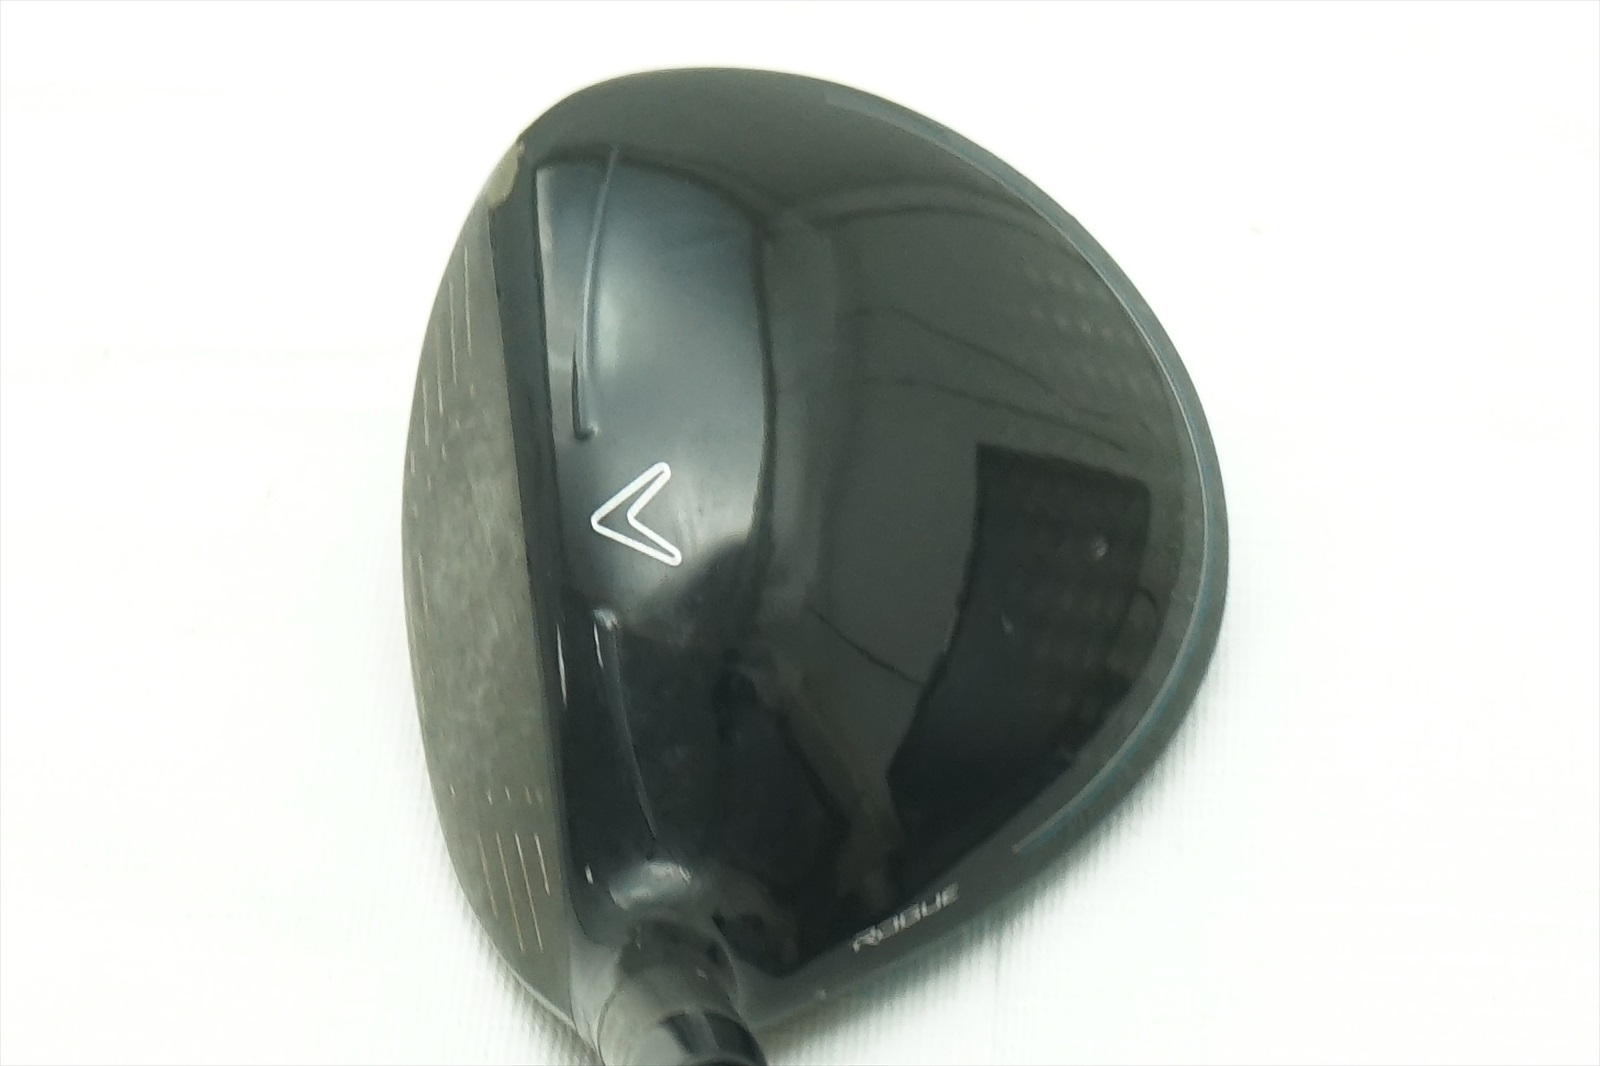 CALLAWAY-ROGUE-DEGREE-7-FAIRWAY-WOOD-REGULAR-FLEX-SYNERGY-GRAPHITE-0730702 thumbnail 3